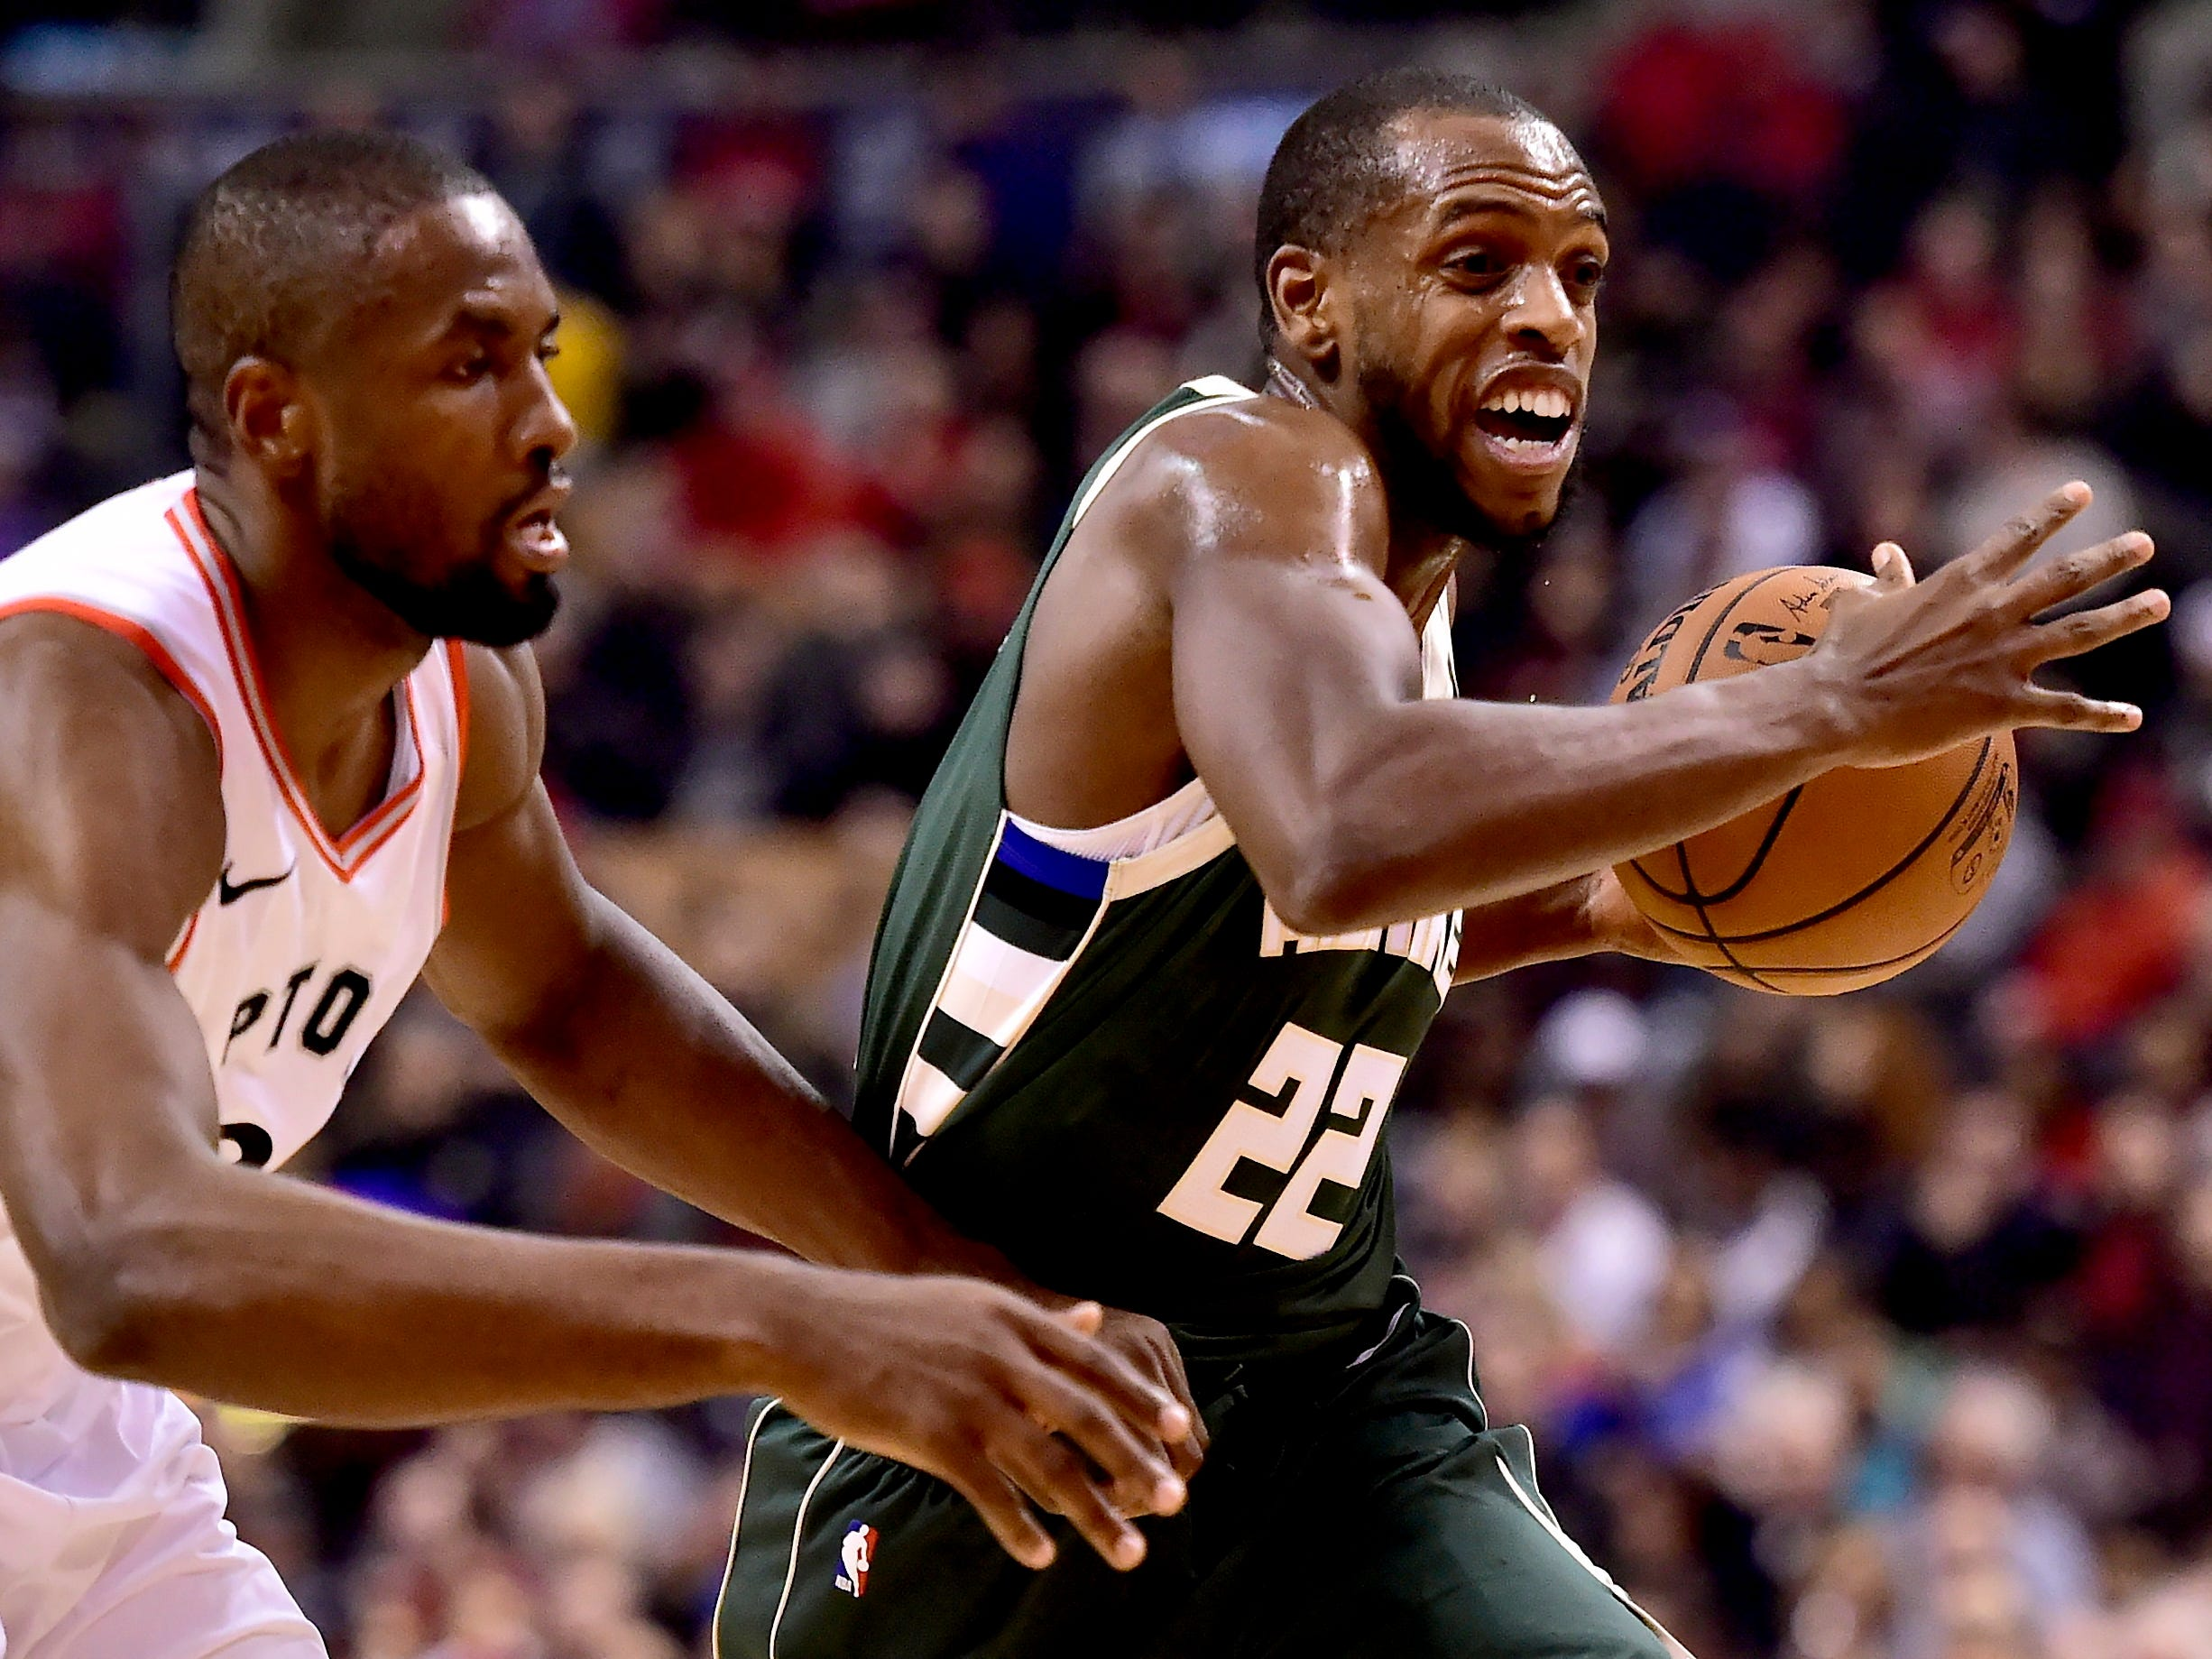 Toronto Raptors forward Serge Ibaka, left, watches Milwaukee Bucks forward Khris Middleton (22) as he drives to the net during first-half NBA basketball game action in Toronto, Sunday, Dec. 9, 2018. (Frank Gunn/The Canadian Press via AP)